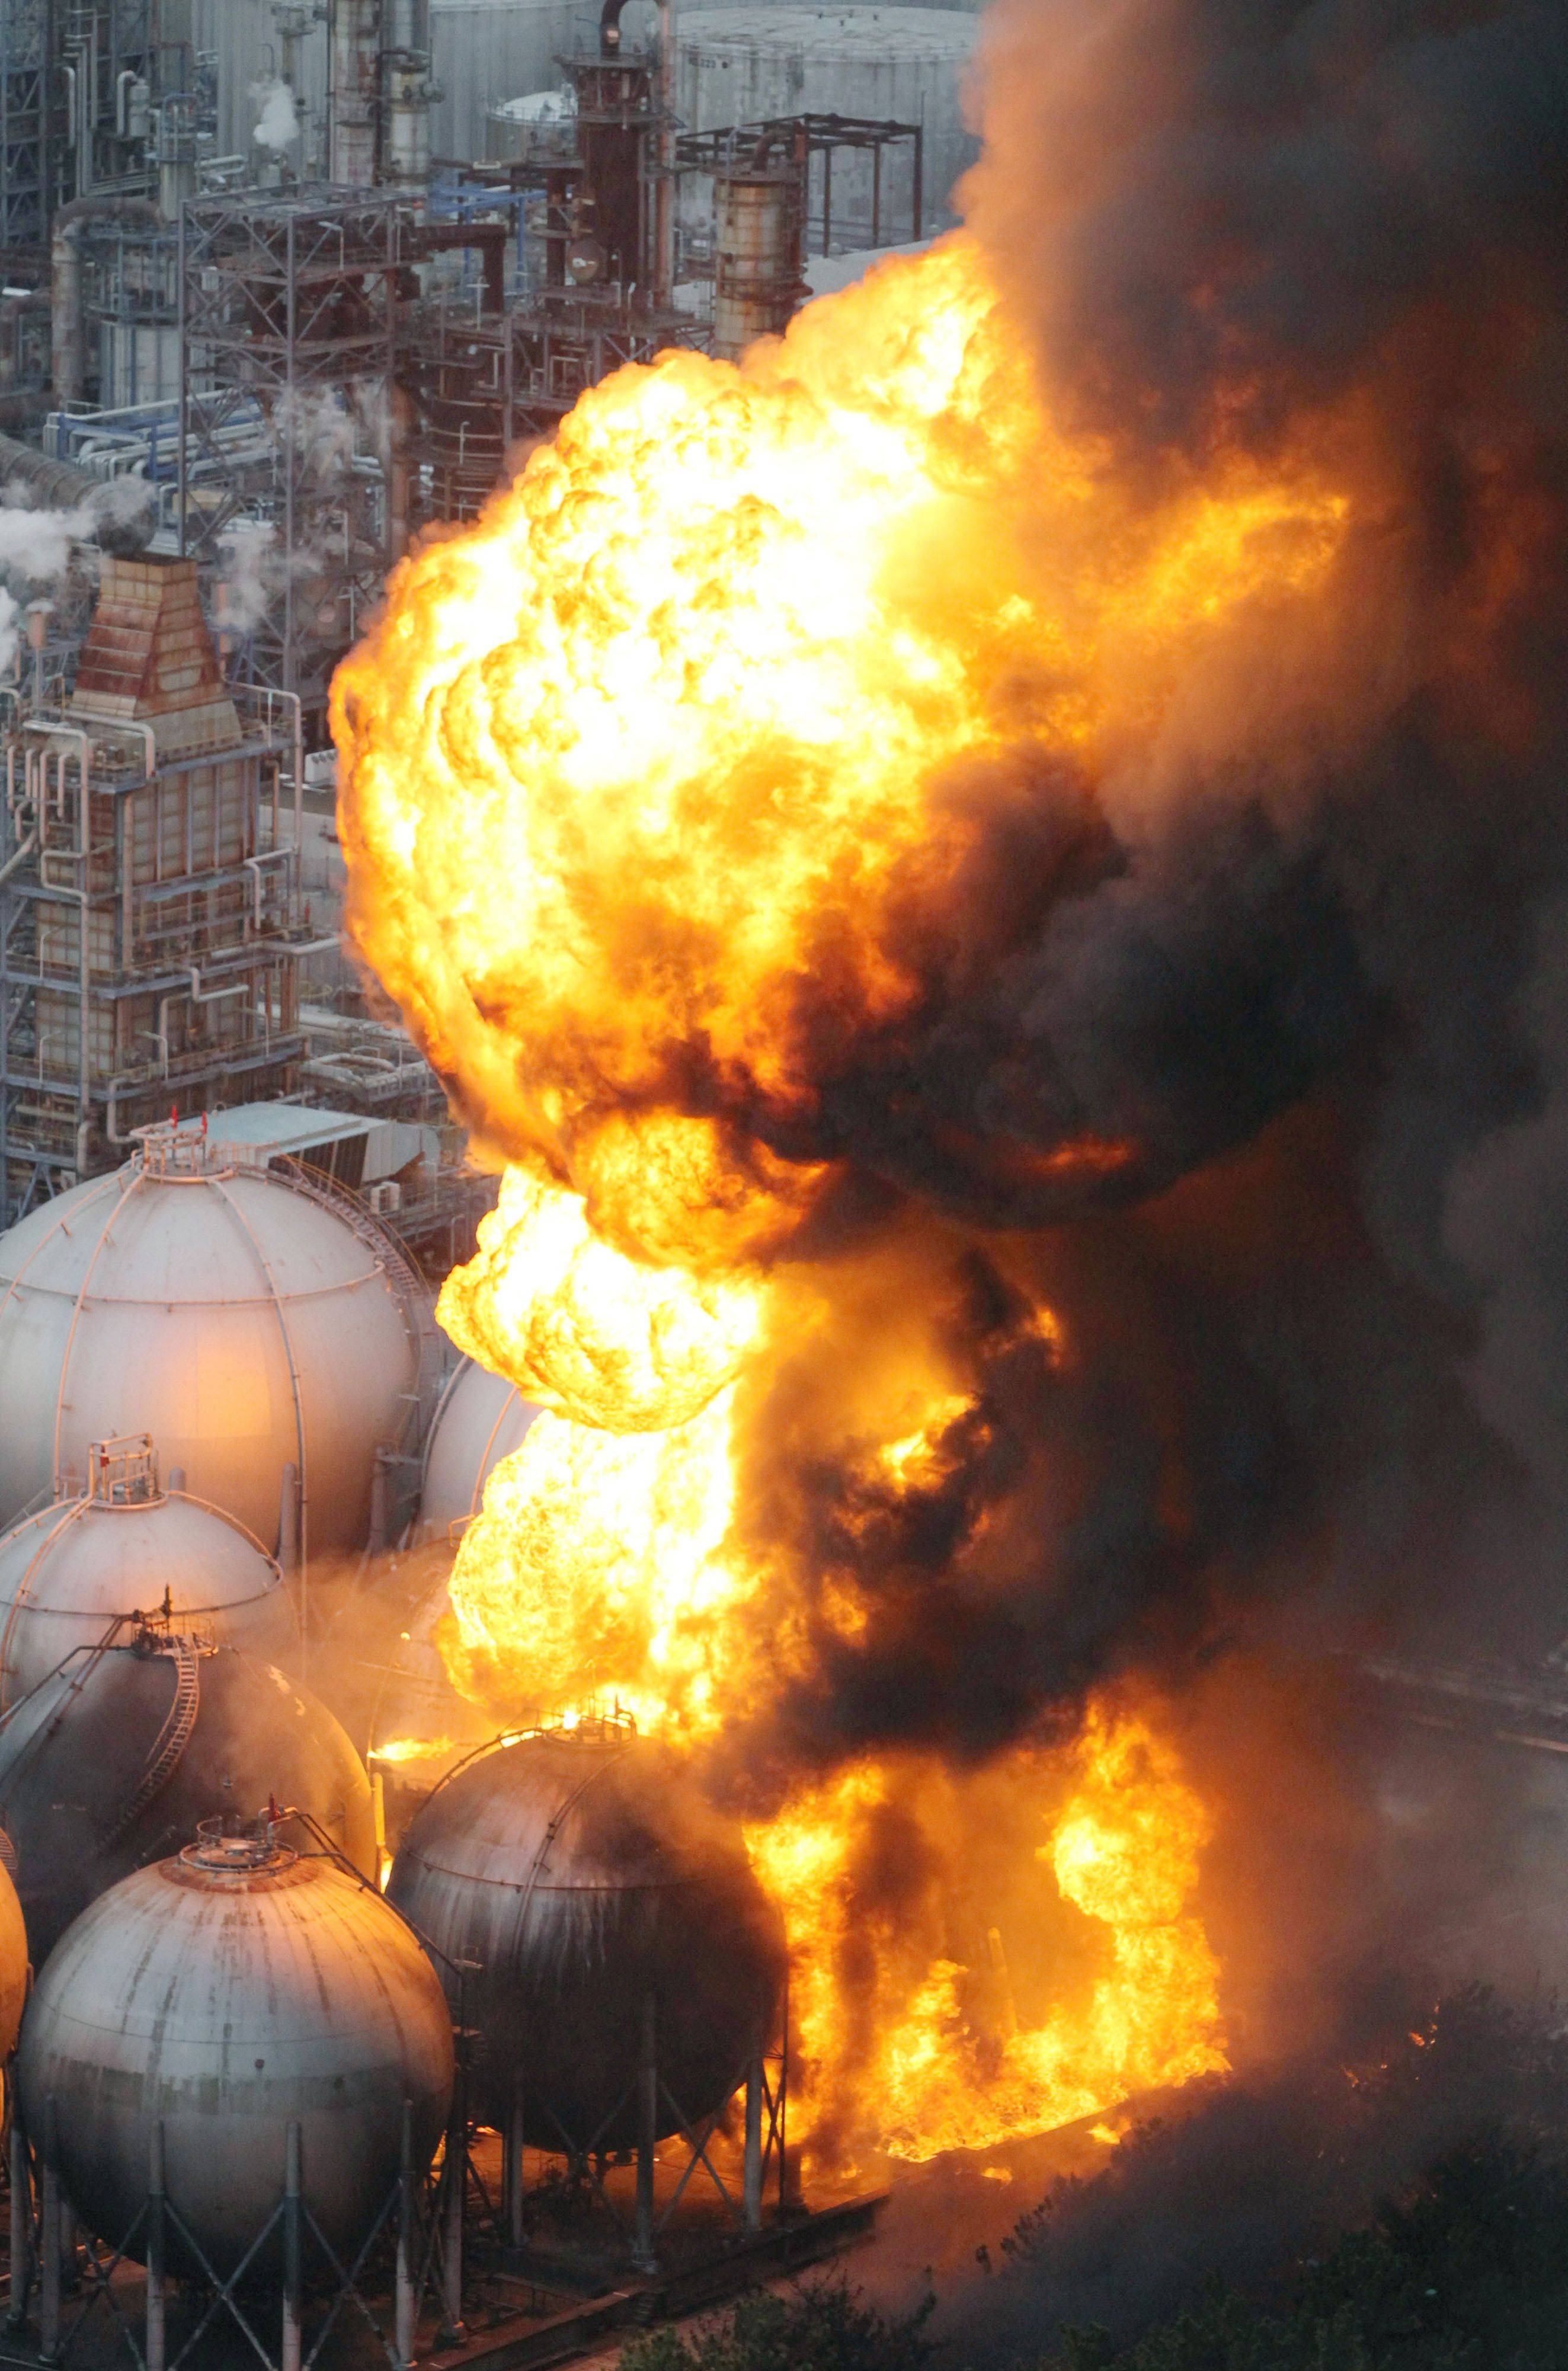 Giant fireballs rise from a burning oil refinery in Ichihara, Chiba Prefecture (state) after Japan was struck by a strong earthquake.